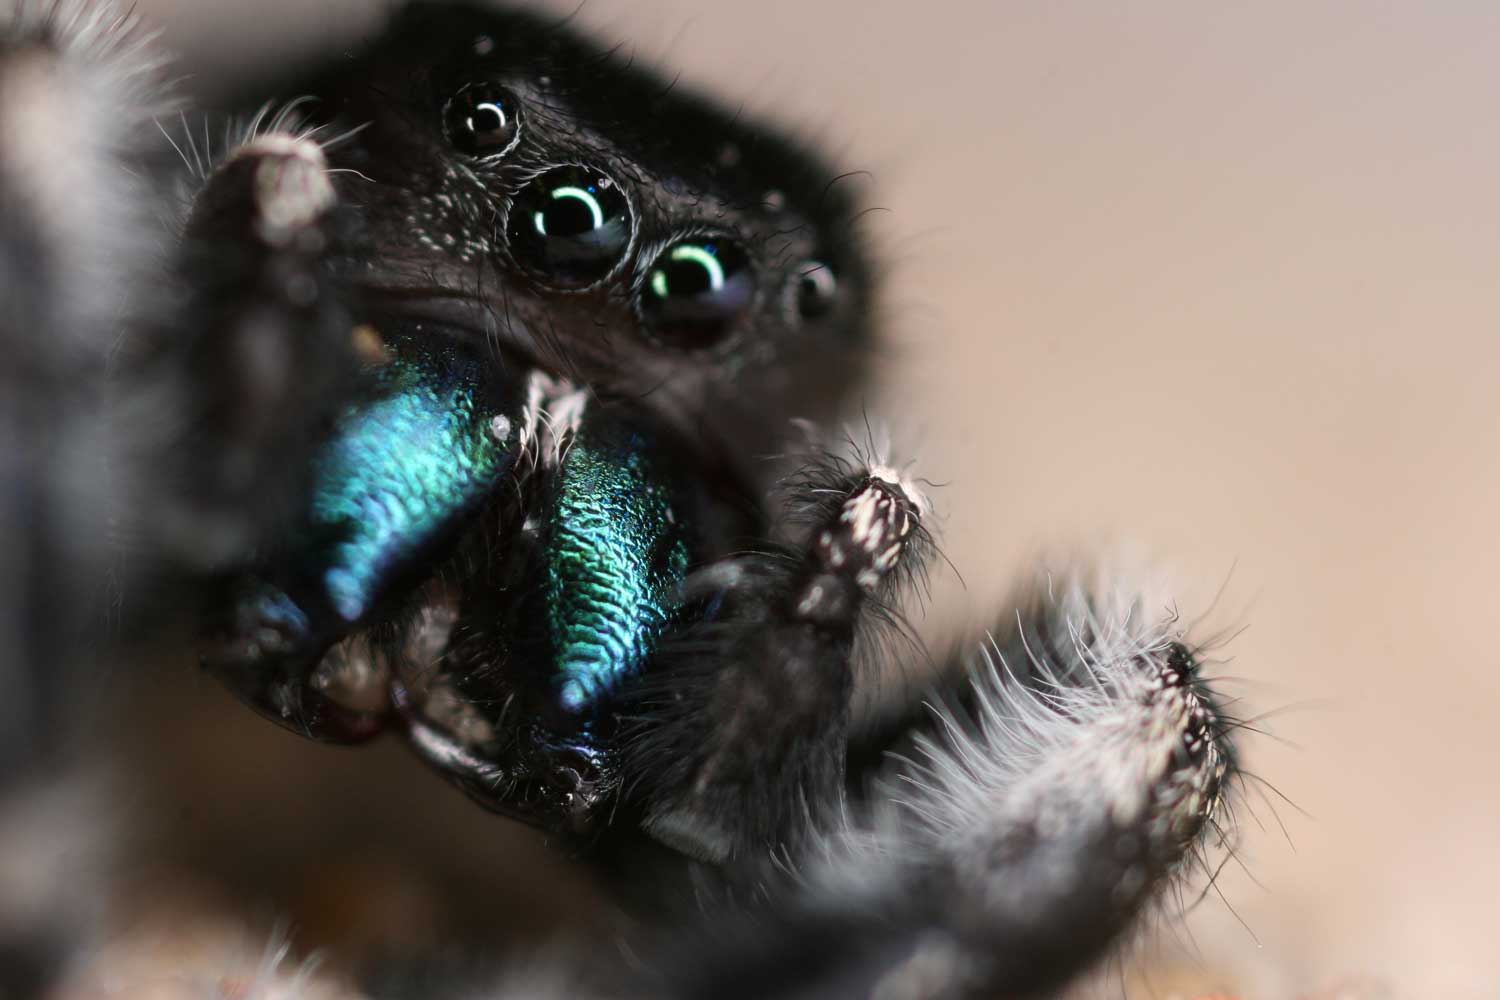 A jumping spider. Credit: Gil Menda and the Hoy lab